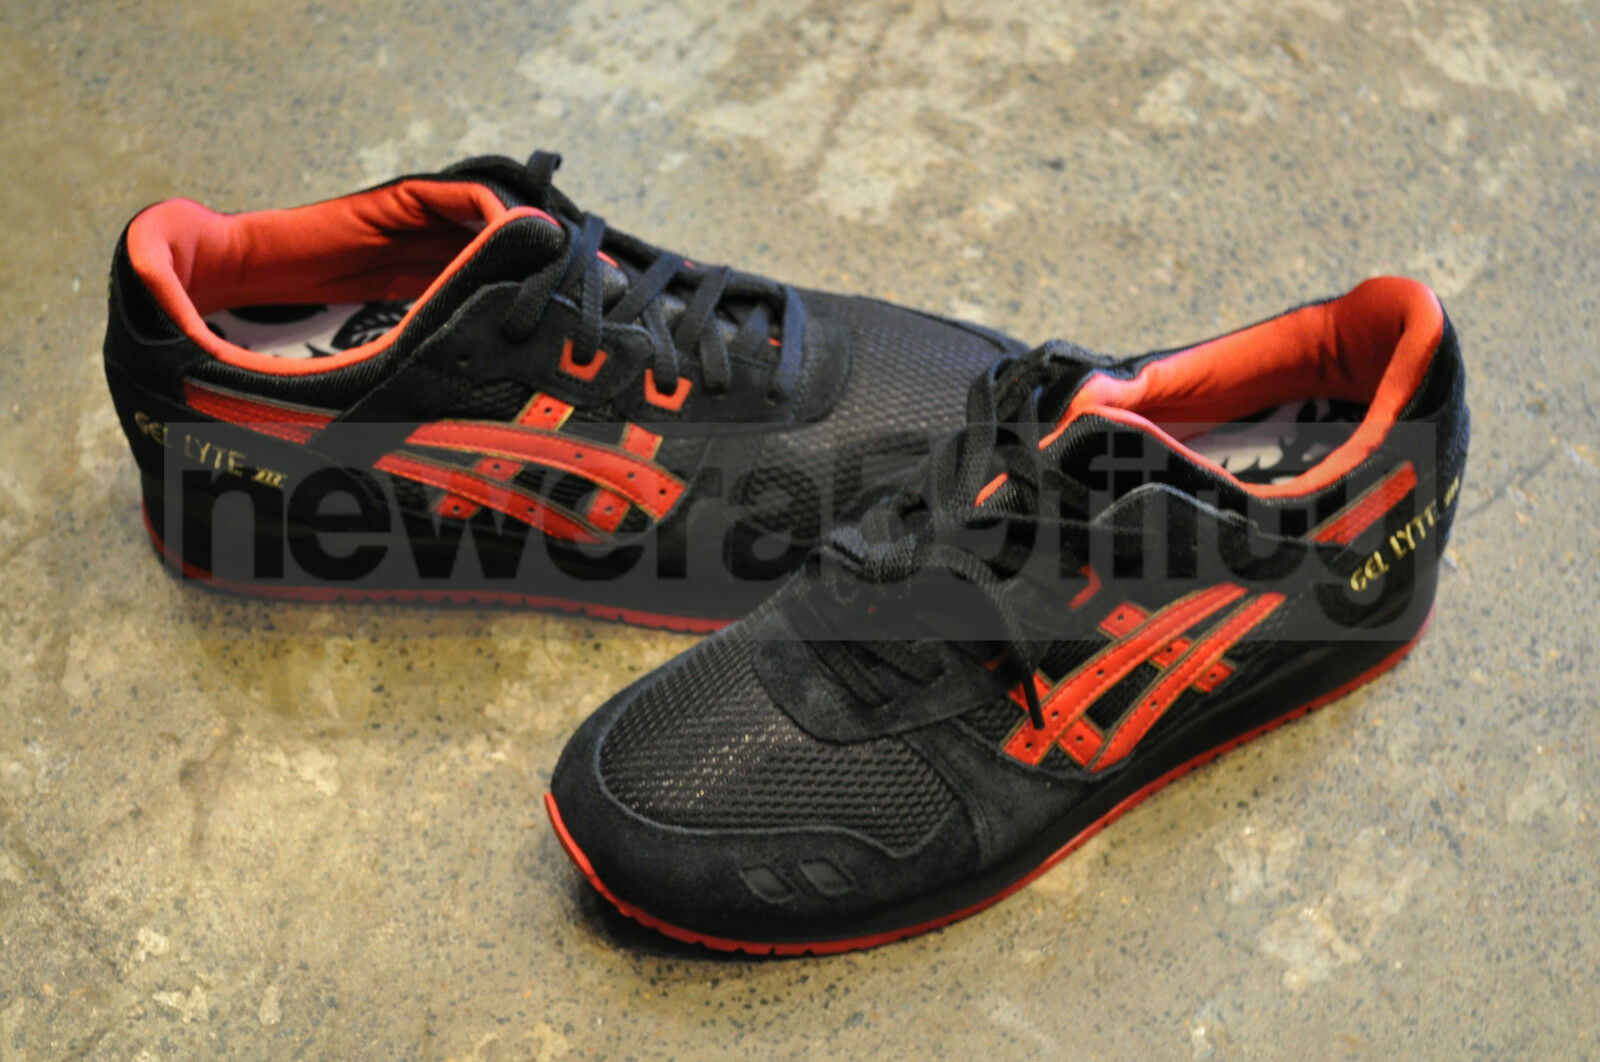 ASICS Gel-Lyte III Women's - 'Haters' Valentines Day Pack Pack Pack 8265e2